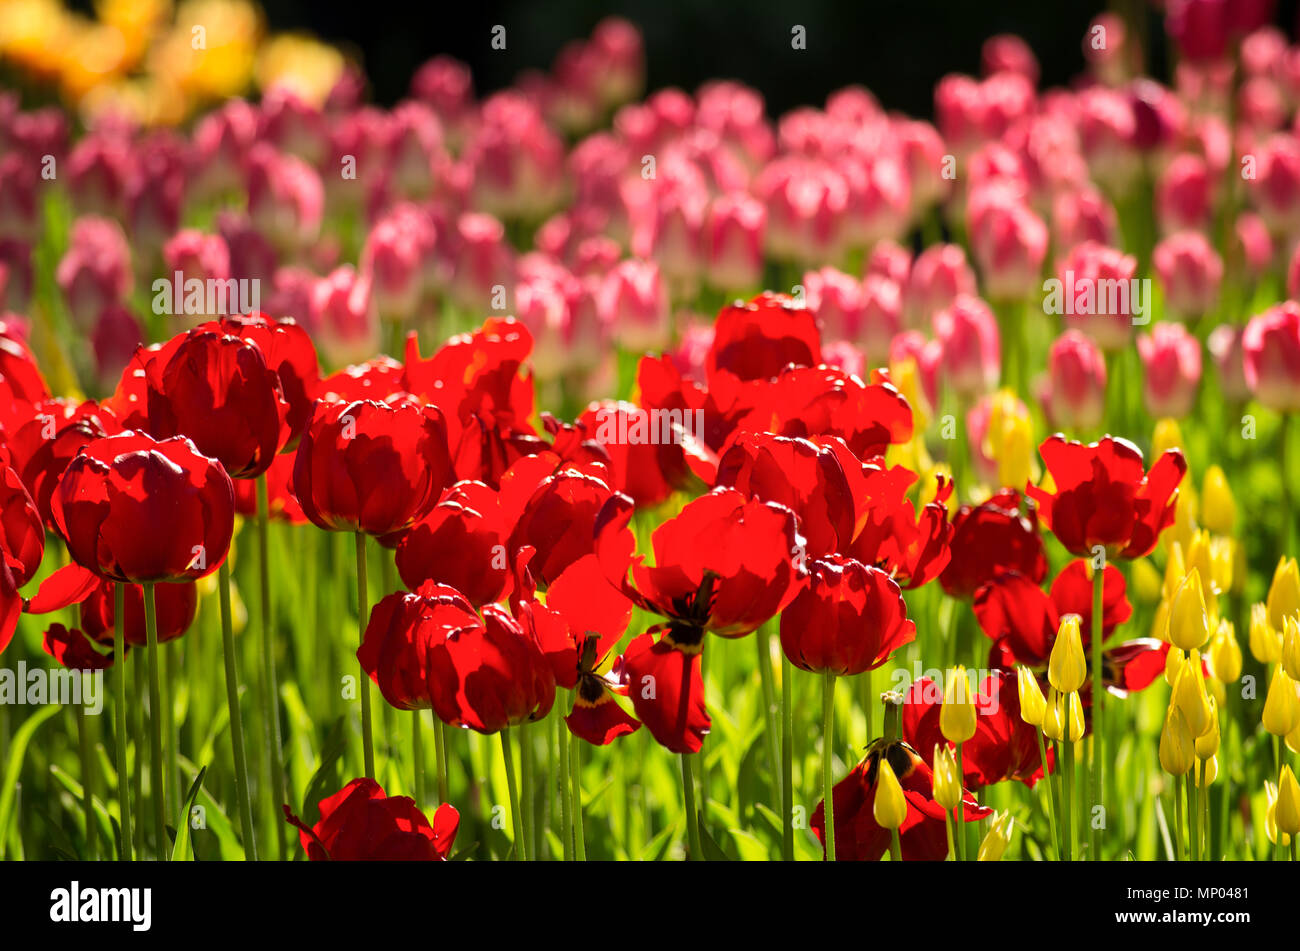 Colorful tulips with blooming buds and falling petals lit with the sun - Stock Image